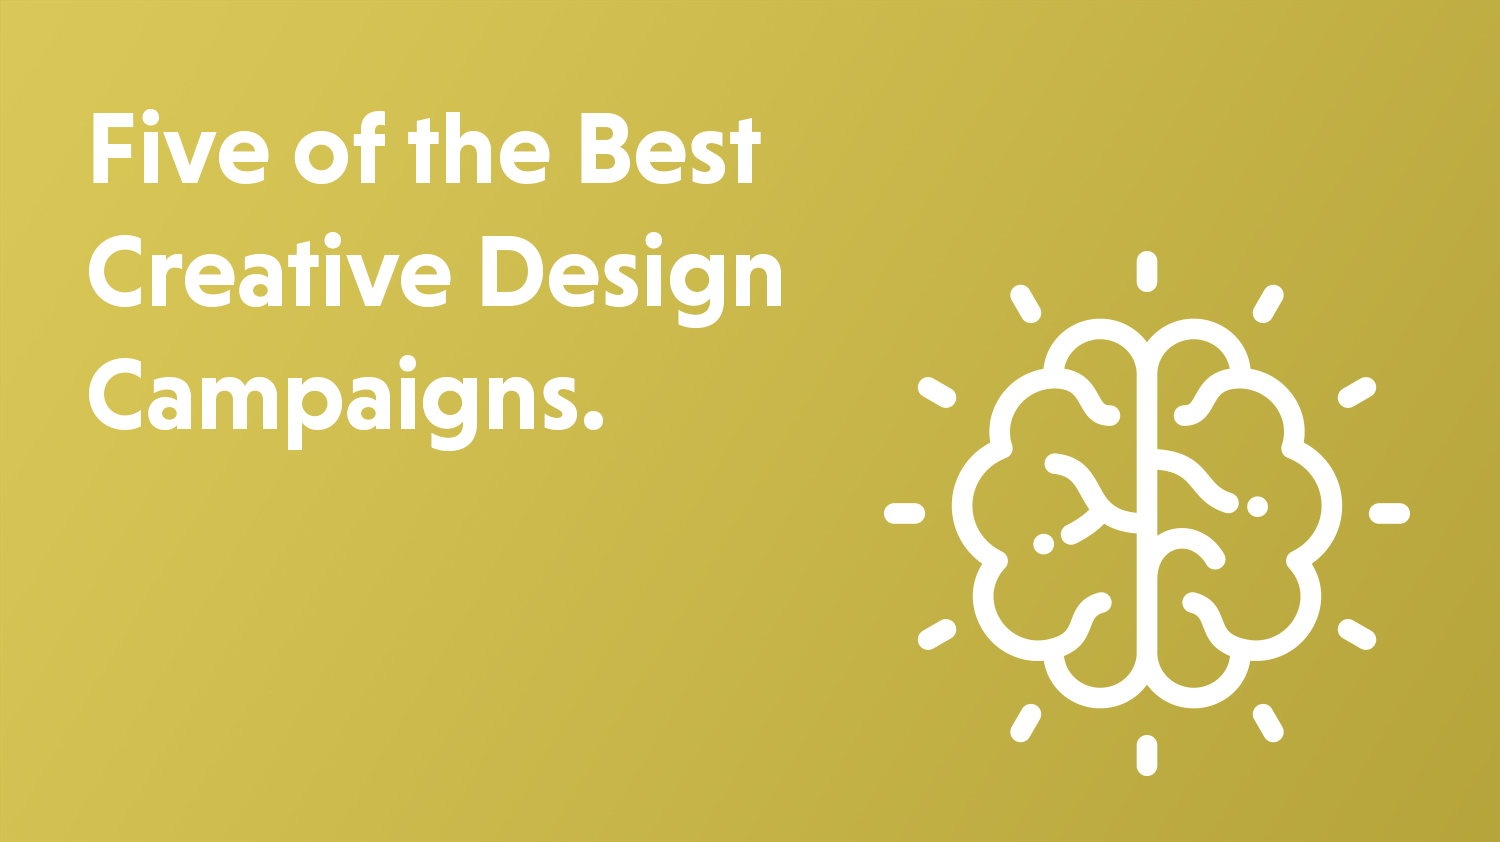 Blog cover artwork showing the title Five of The Best Creative Design Campaigns